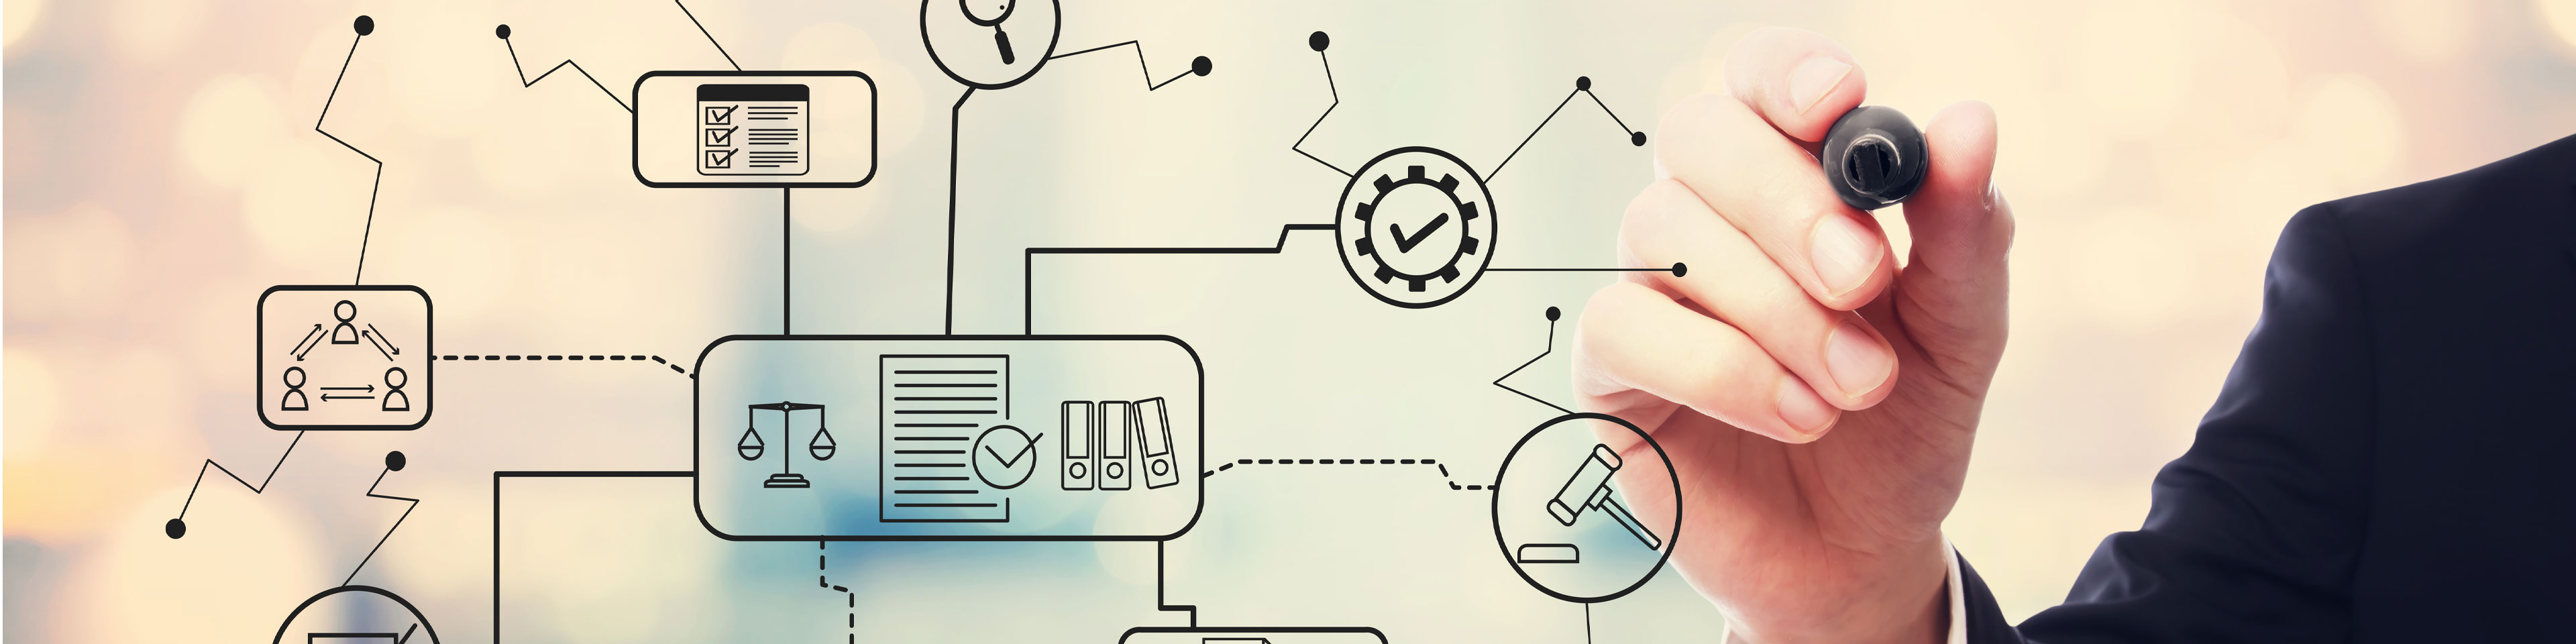 Defining business processes